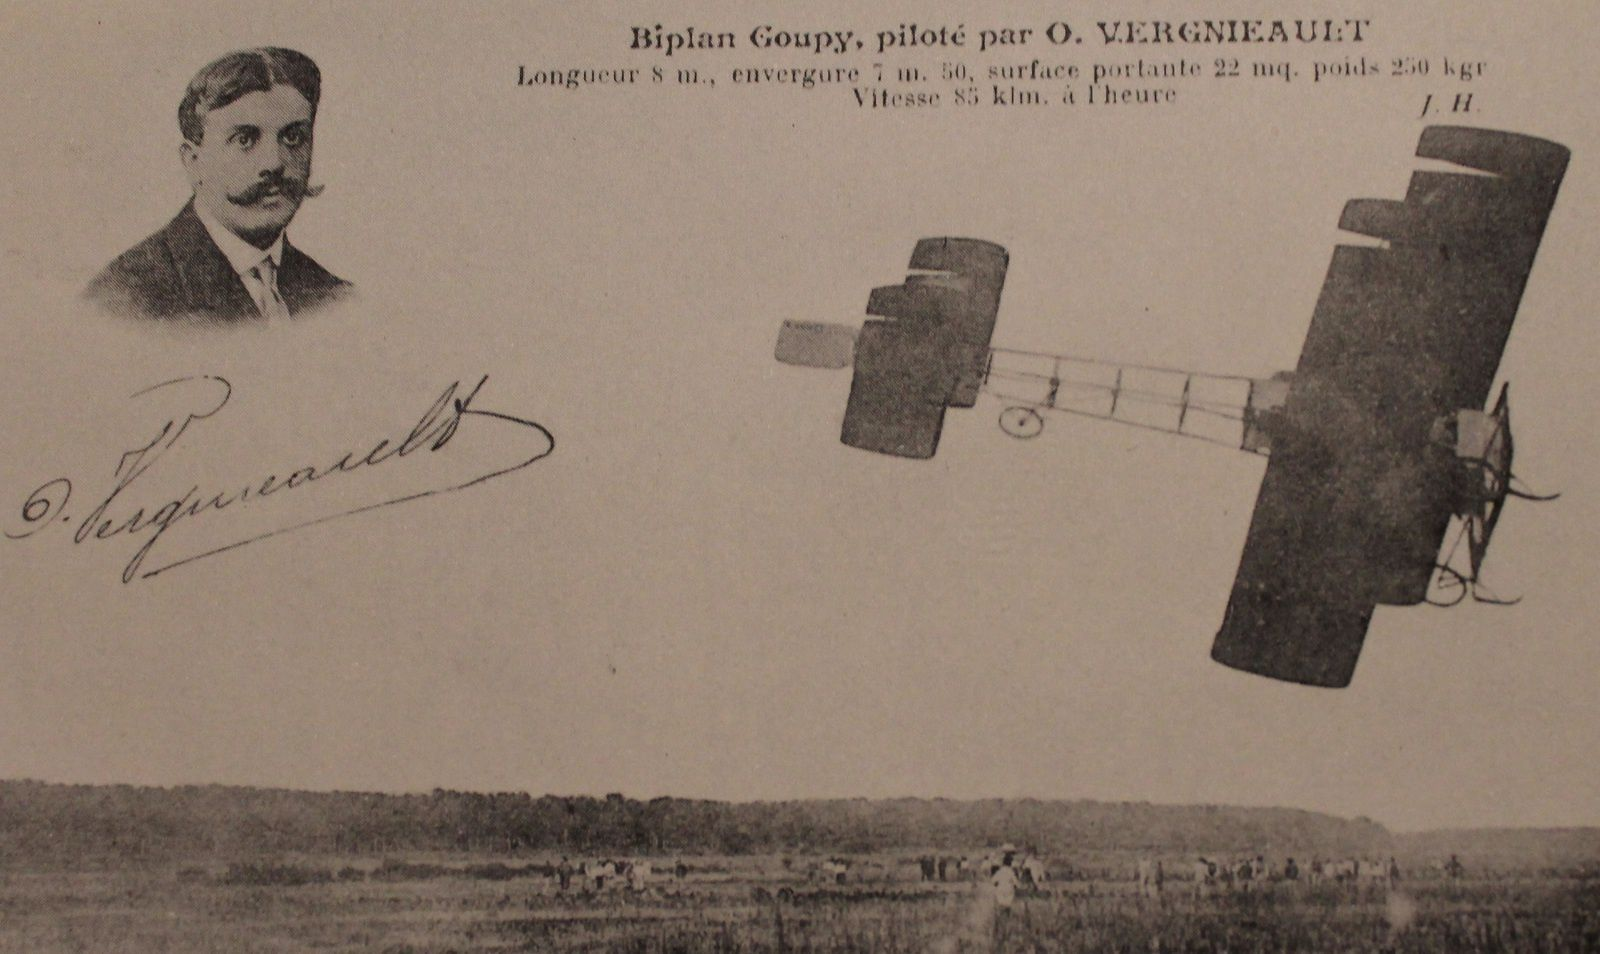 Un exceptionnel meeting d'aviation à Moulins en octobre 1912